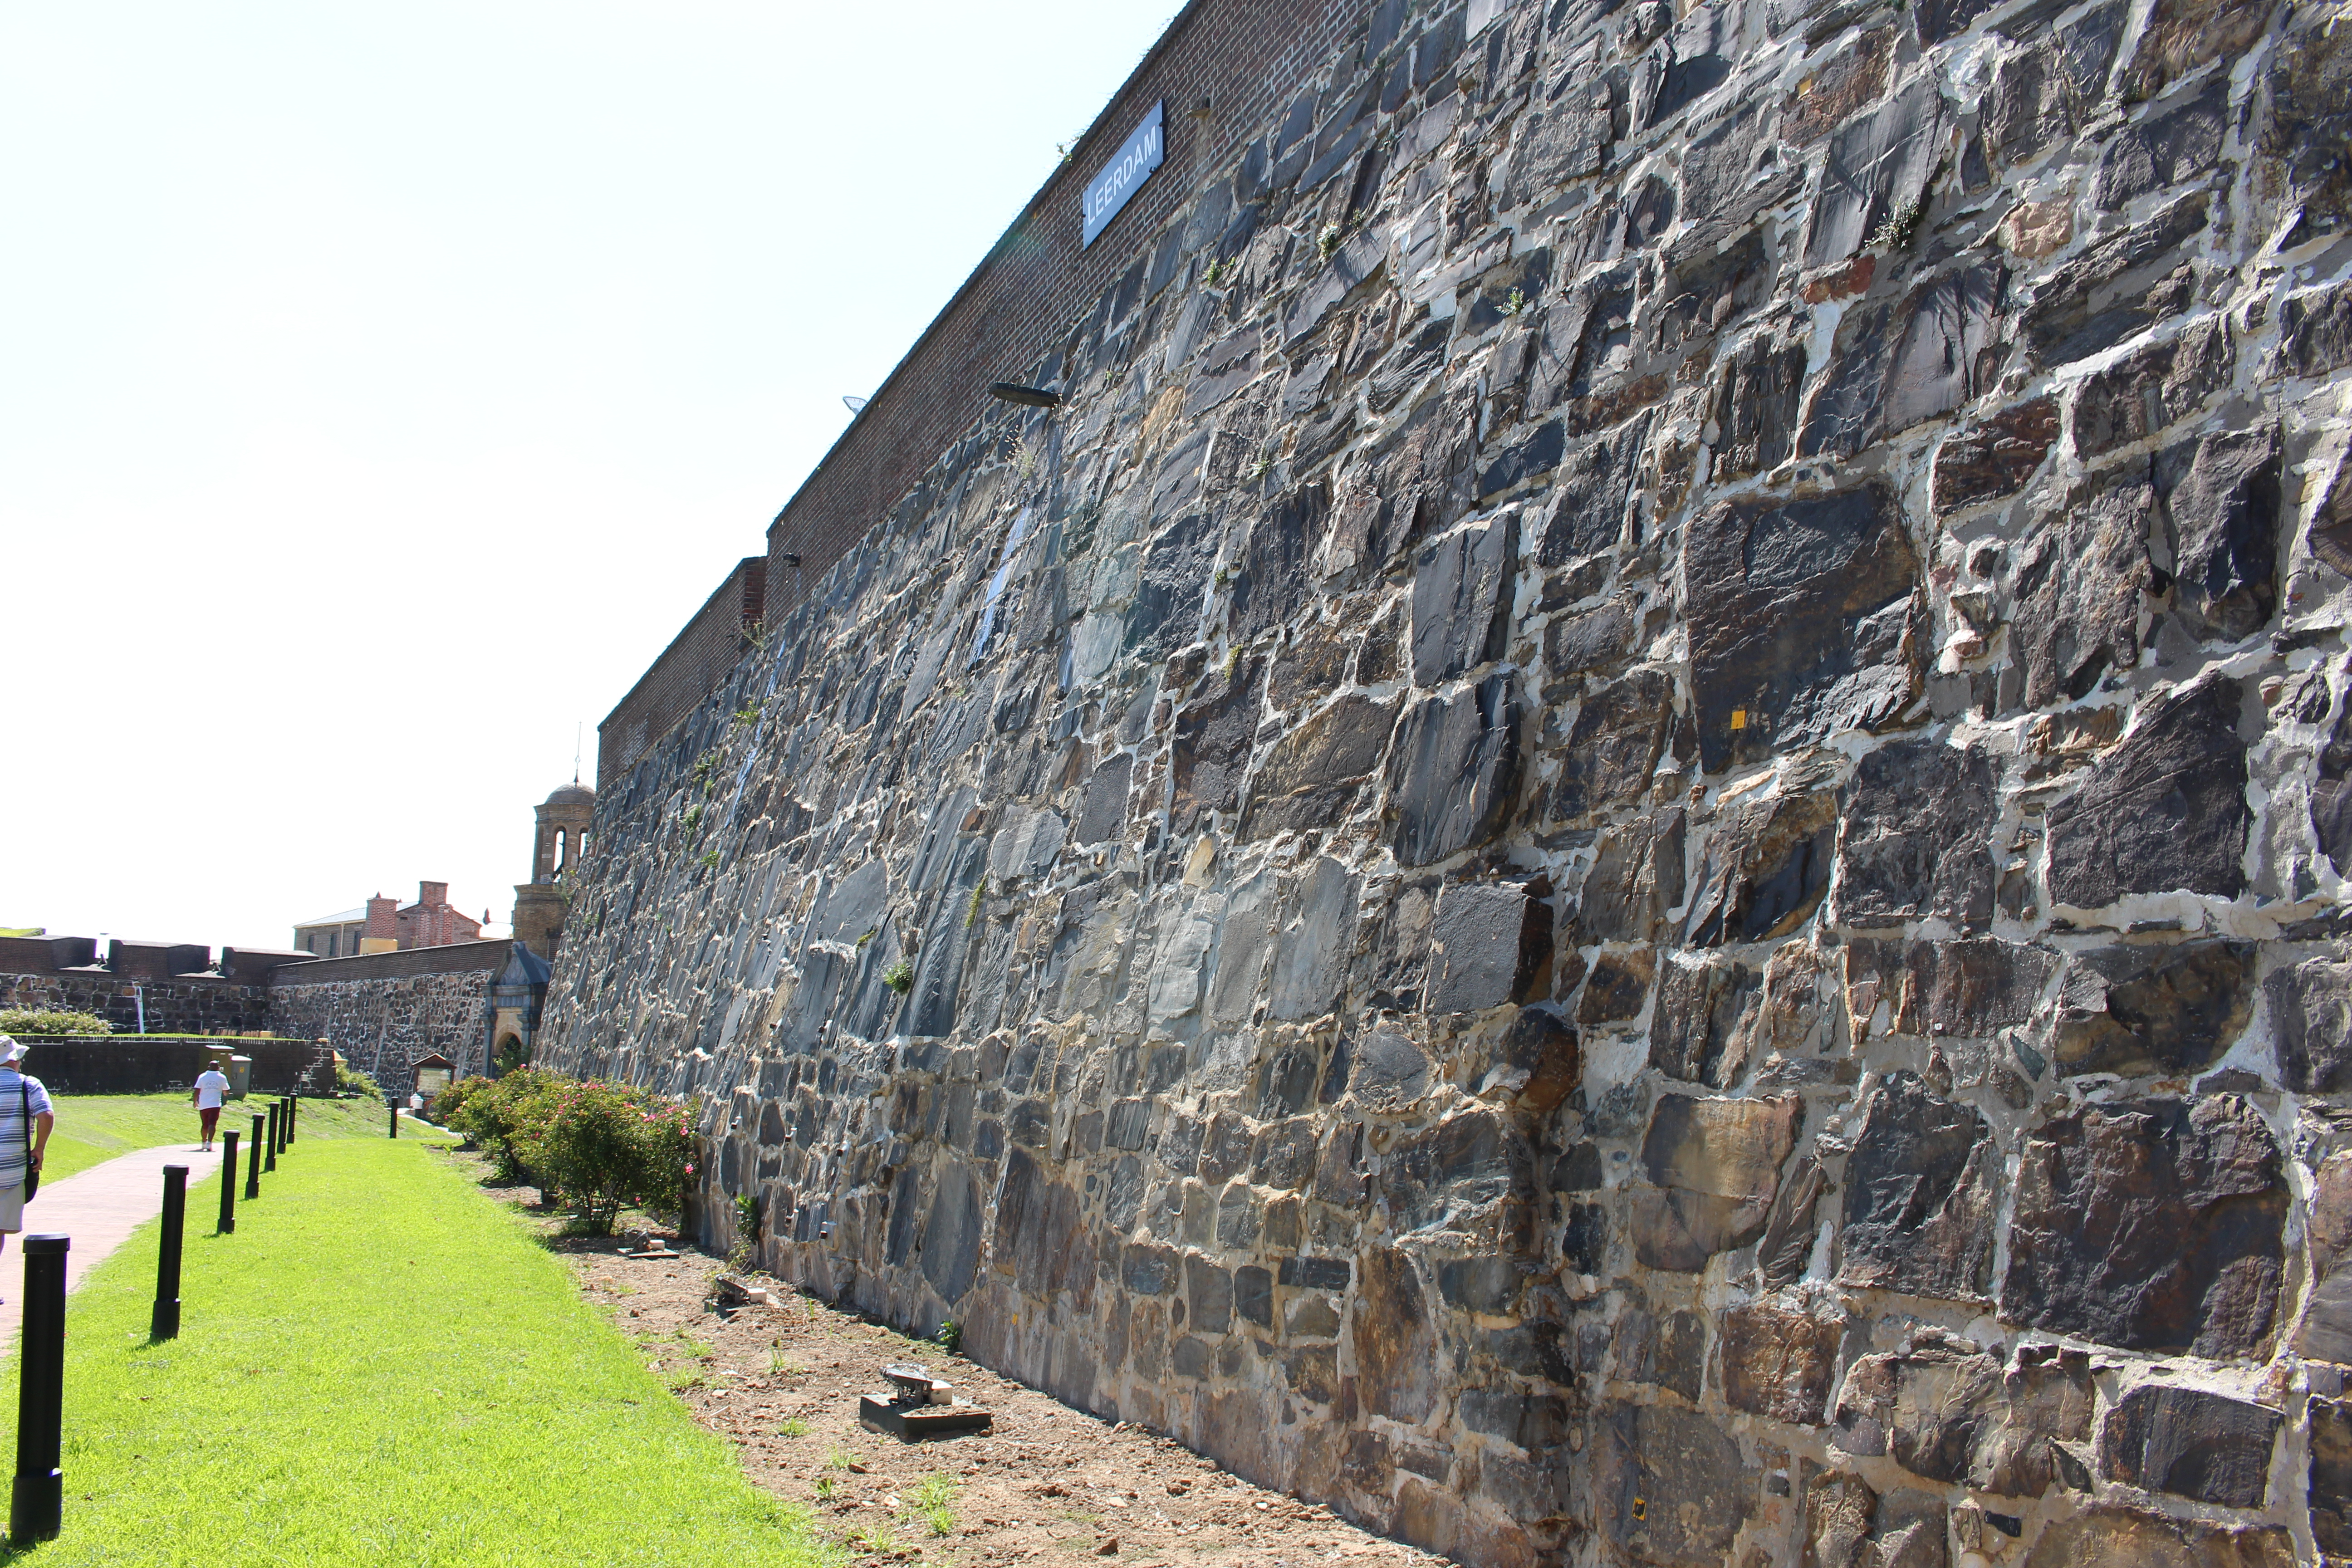 castle-of-good-hope-cape-town-tunnel-tour-good-hope-adventures